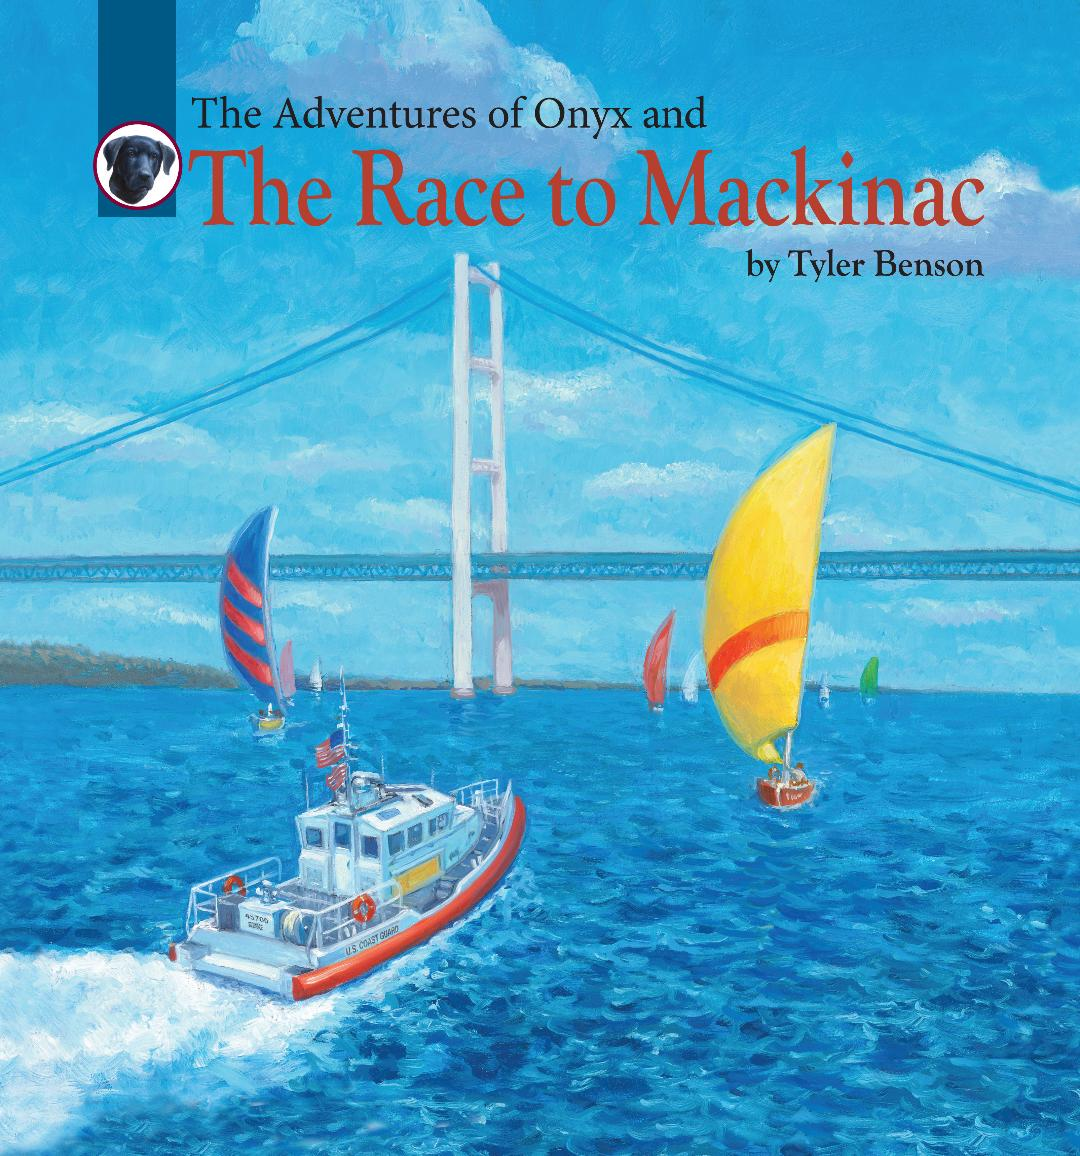 The Adventures of Onyx and The Race to Mackinac